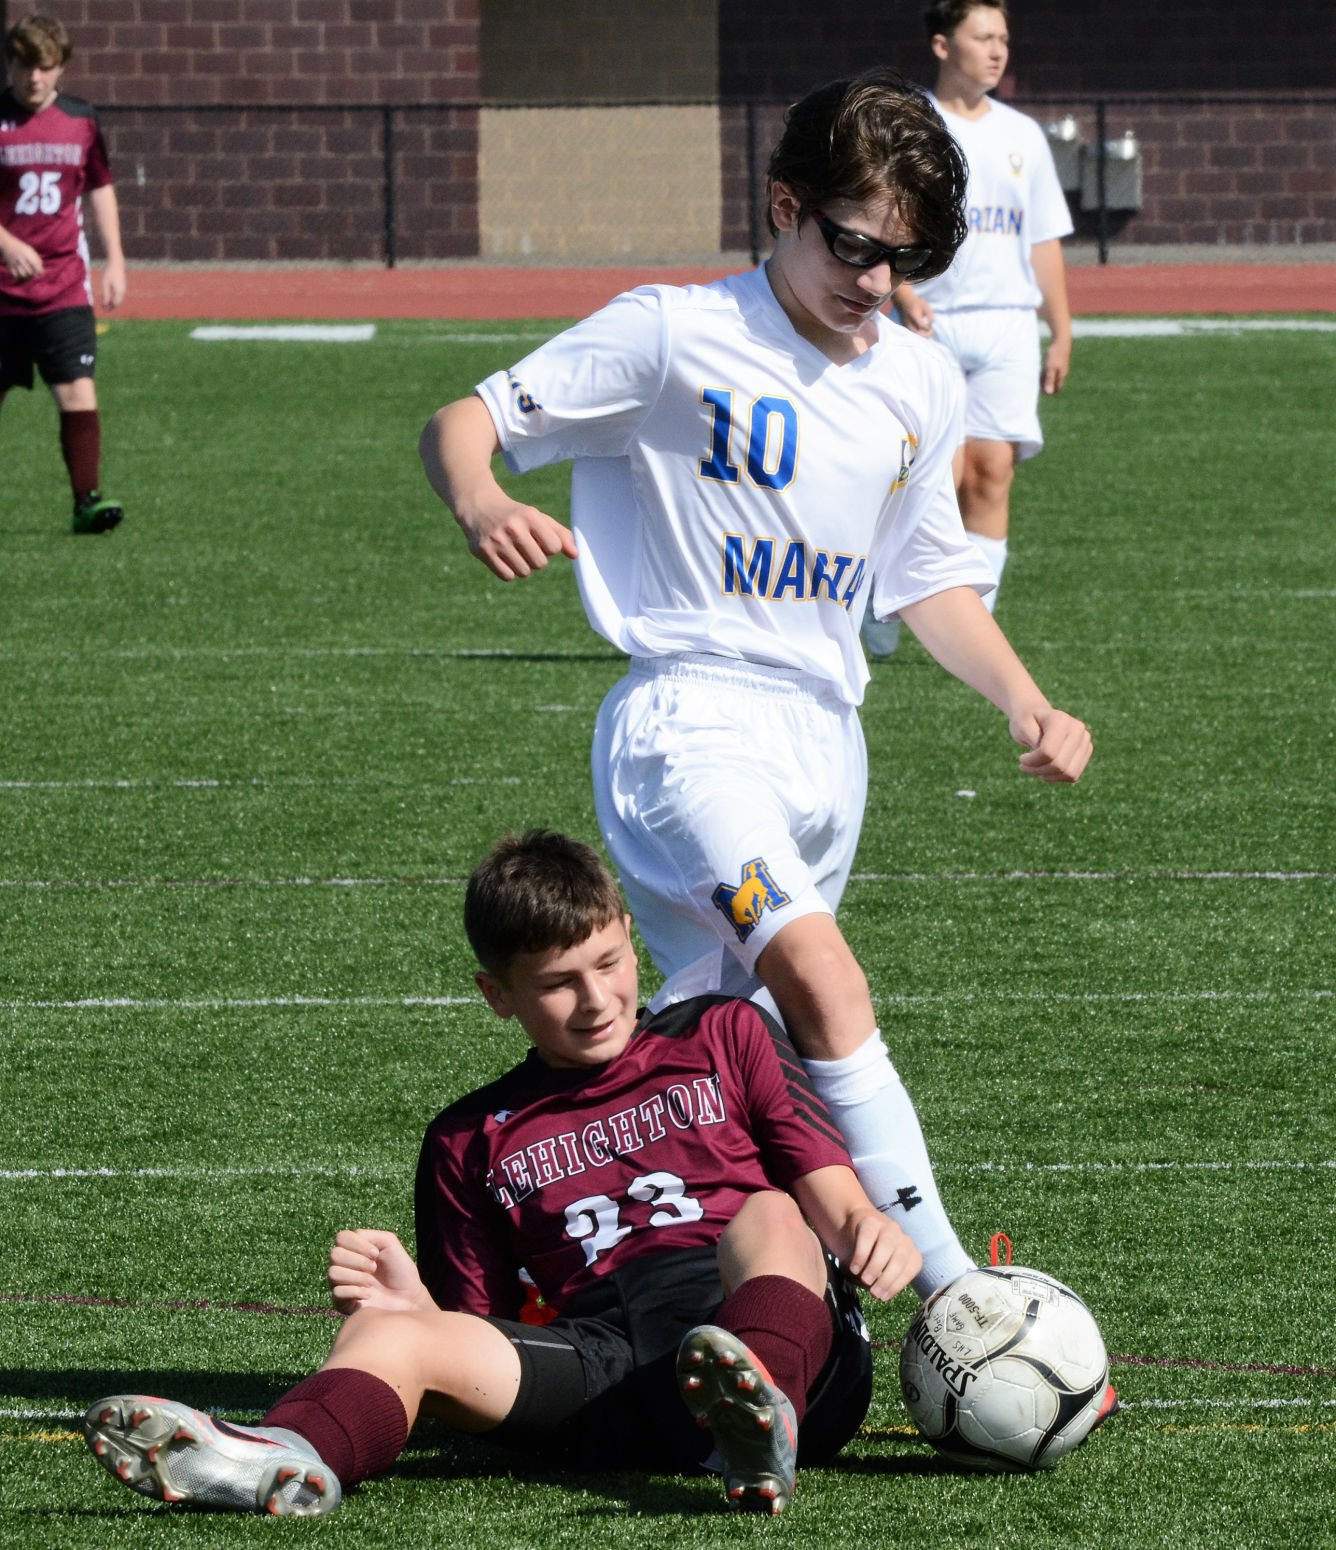 LOCAL ROUNDUP: Marian soccer team makes debut